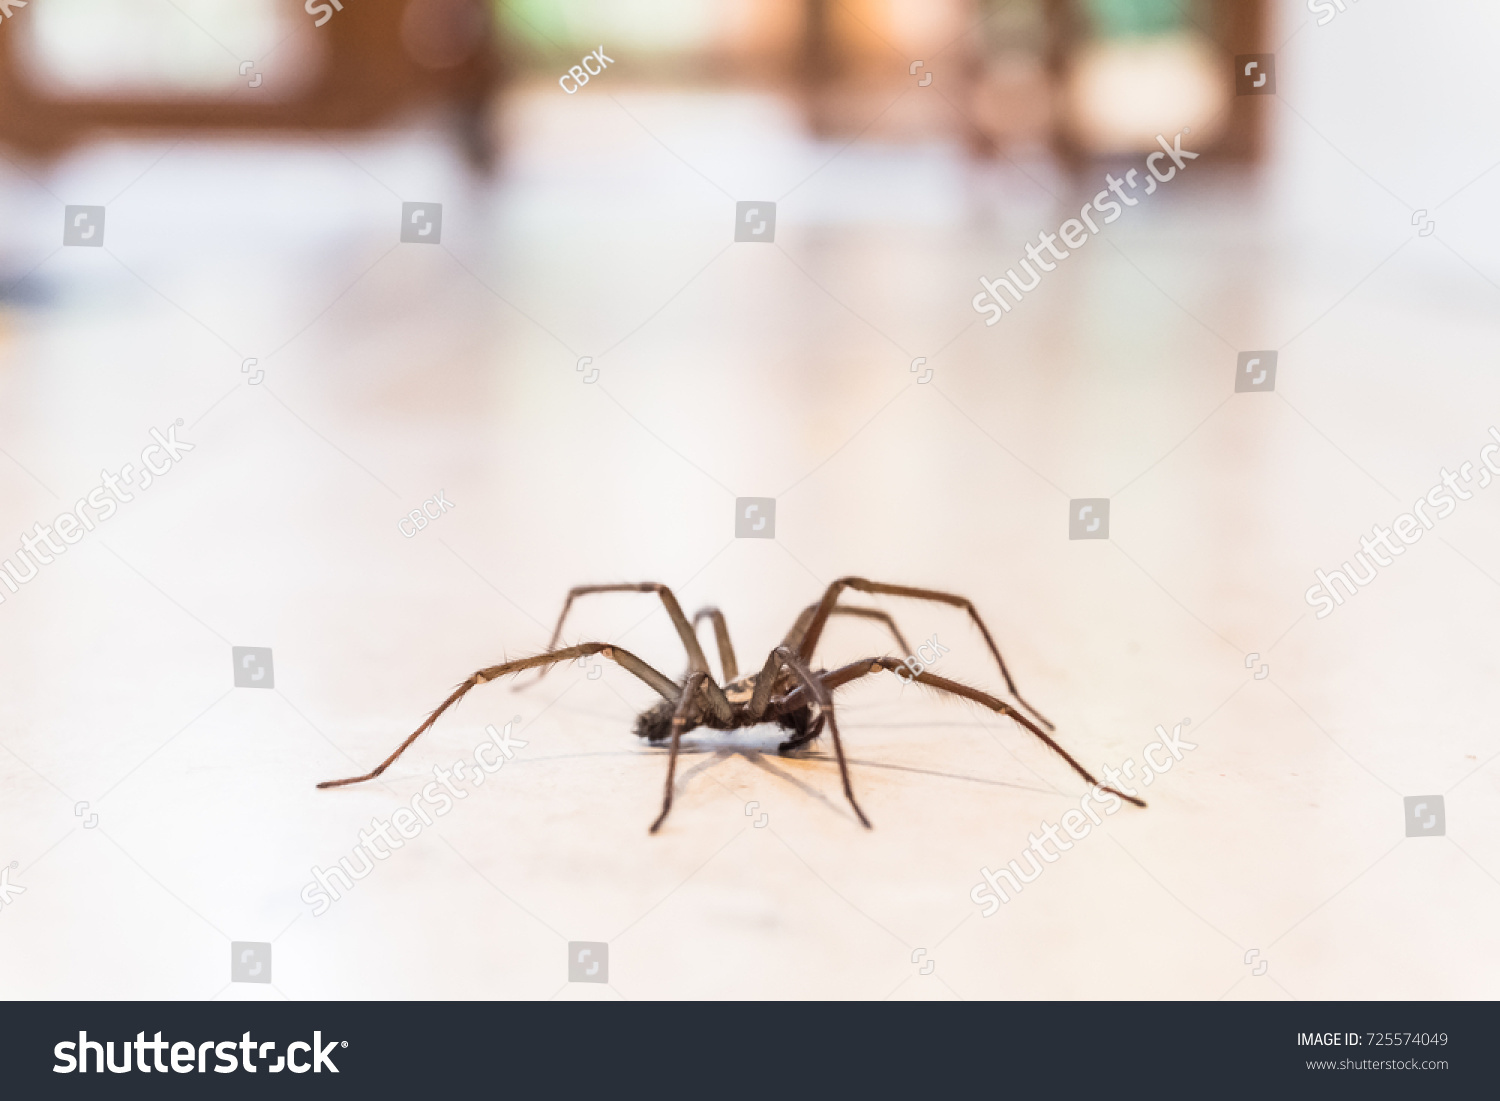 Common House Spider On A Smooth Tile Floor Seen From Ground Level In A  Kitchen In